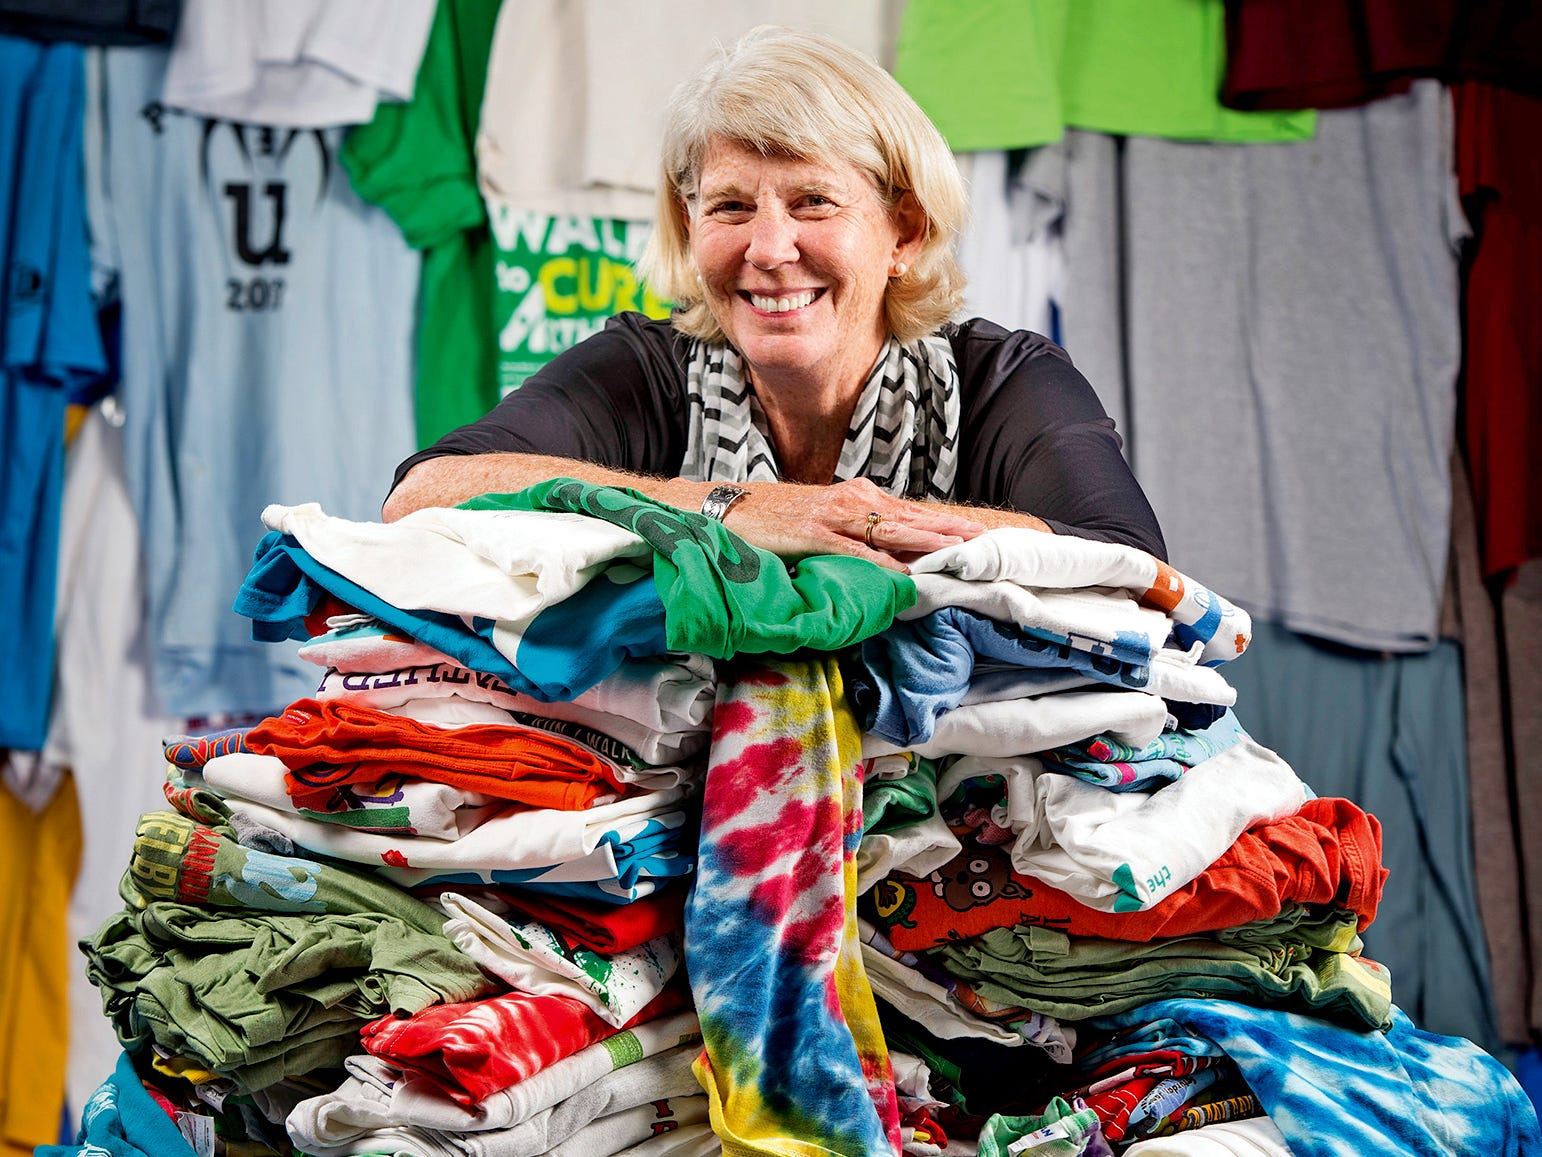 Mary Hance's Ms. Cheap, who posed with donated T-shirts at The Tennessean's office June 21, 2016, is all smiles after so many T-shirts were donated in her drive for Room in the Inn.